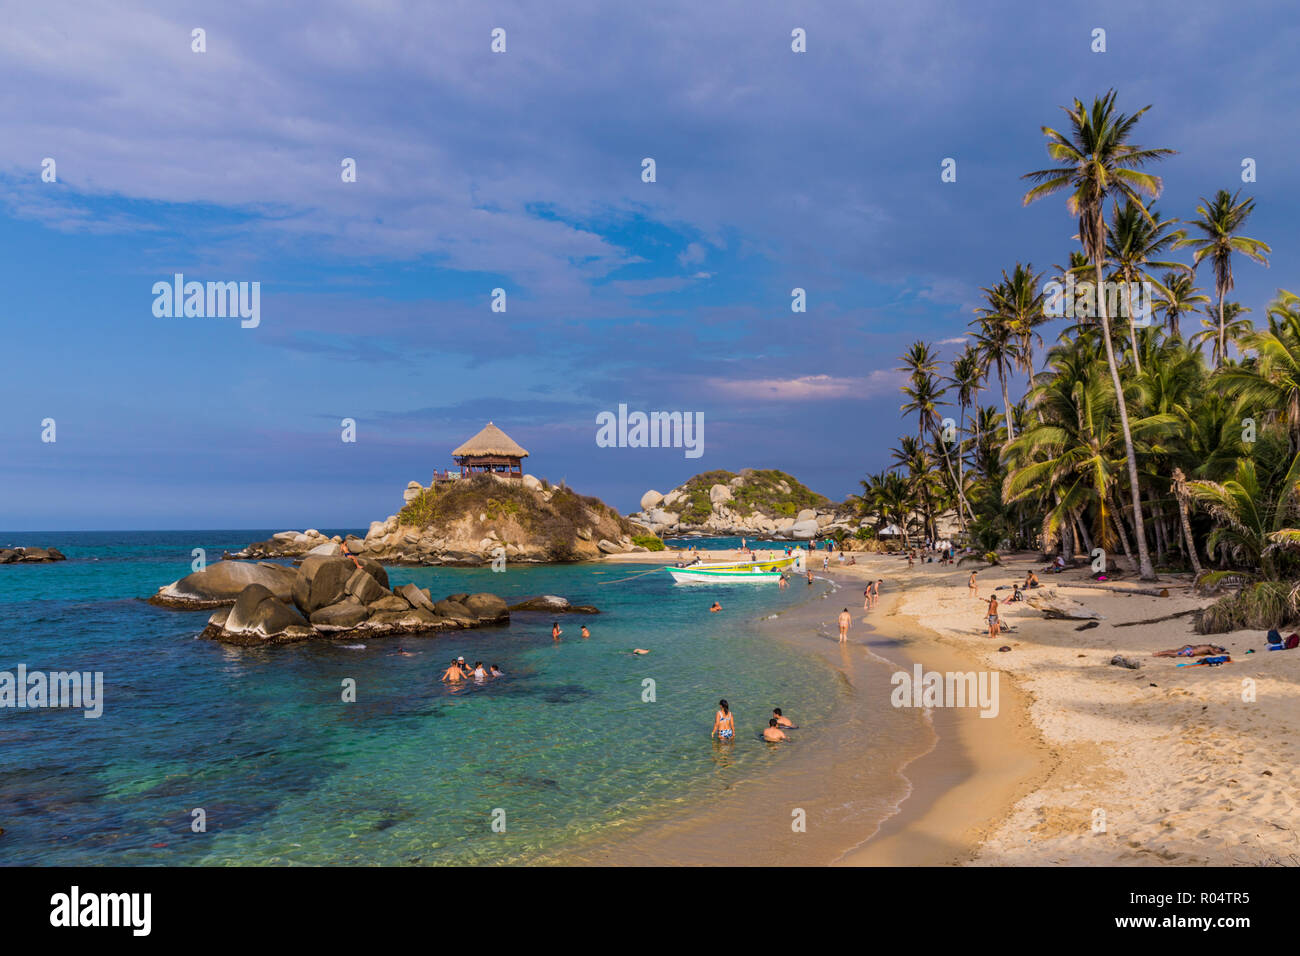 A view of the famous hammock hut overlooking the beach of Cabo San Juan and the Caribbean Sea in Tayrona National Park, Colombia, South America - Stock Image